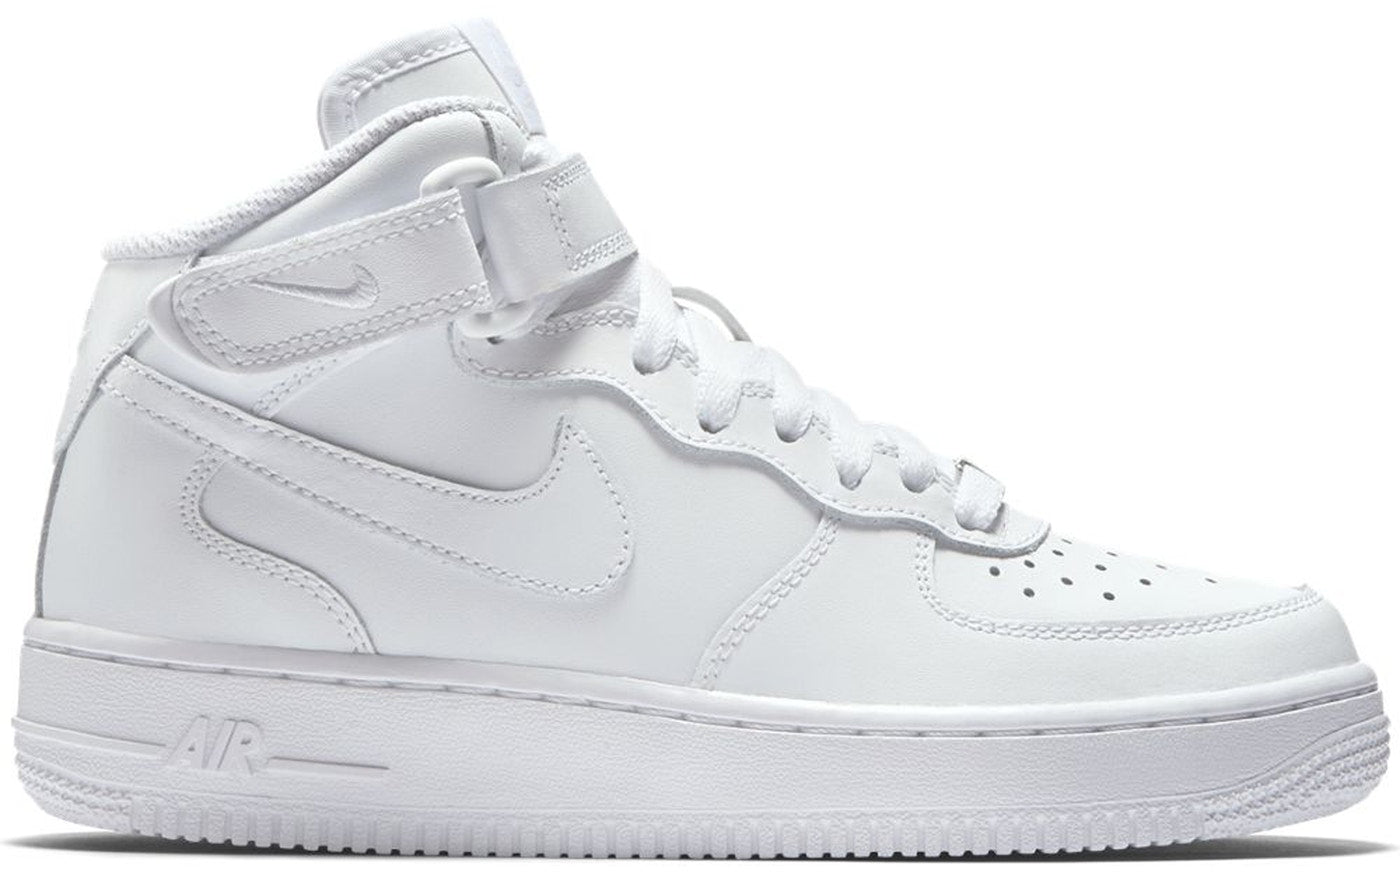 NIKE AIR FORCE 1 MID (GS) TOTAL WHITE 314195 113